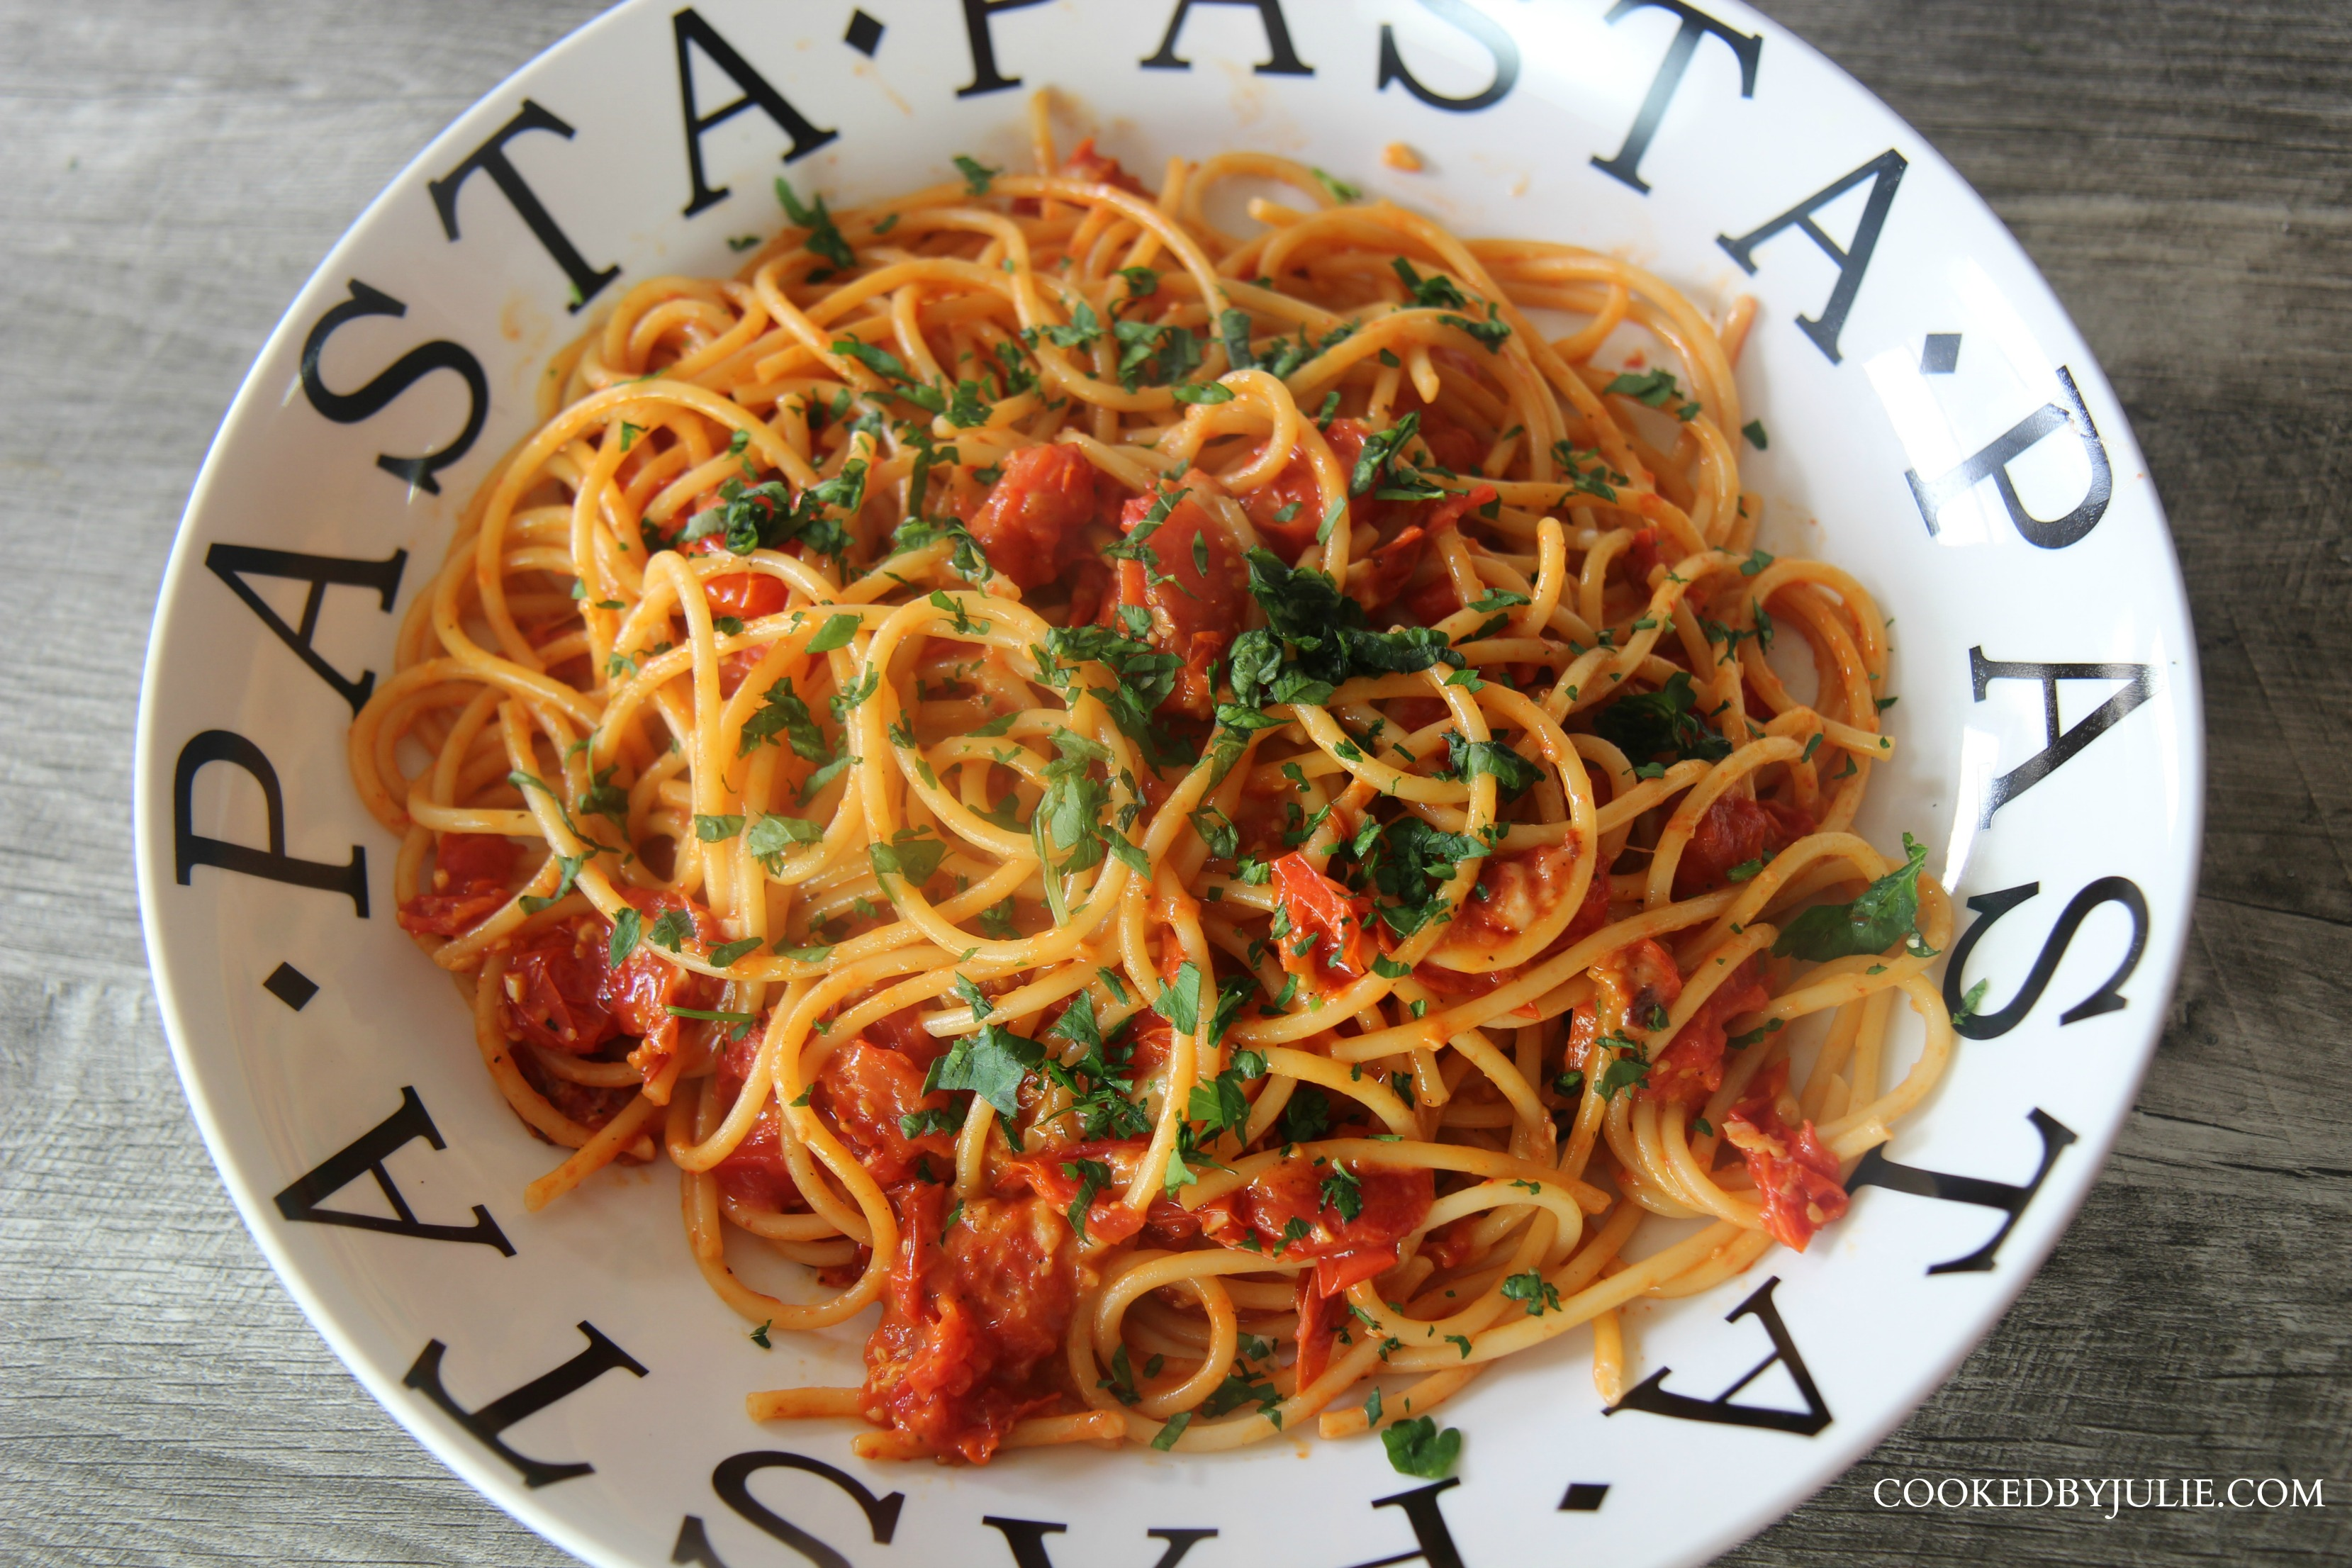 This roasted tomato bucatini is such a refreshing pasta dish with cheese and fresh roasted tomatoes